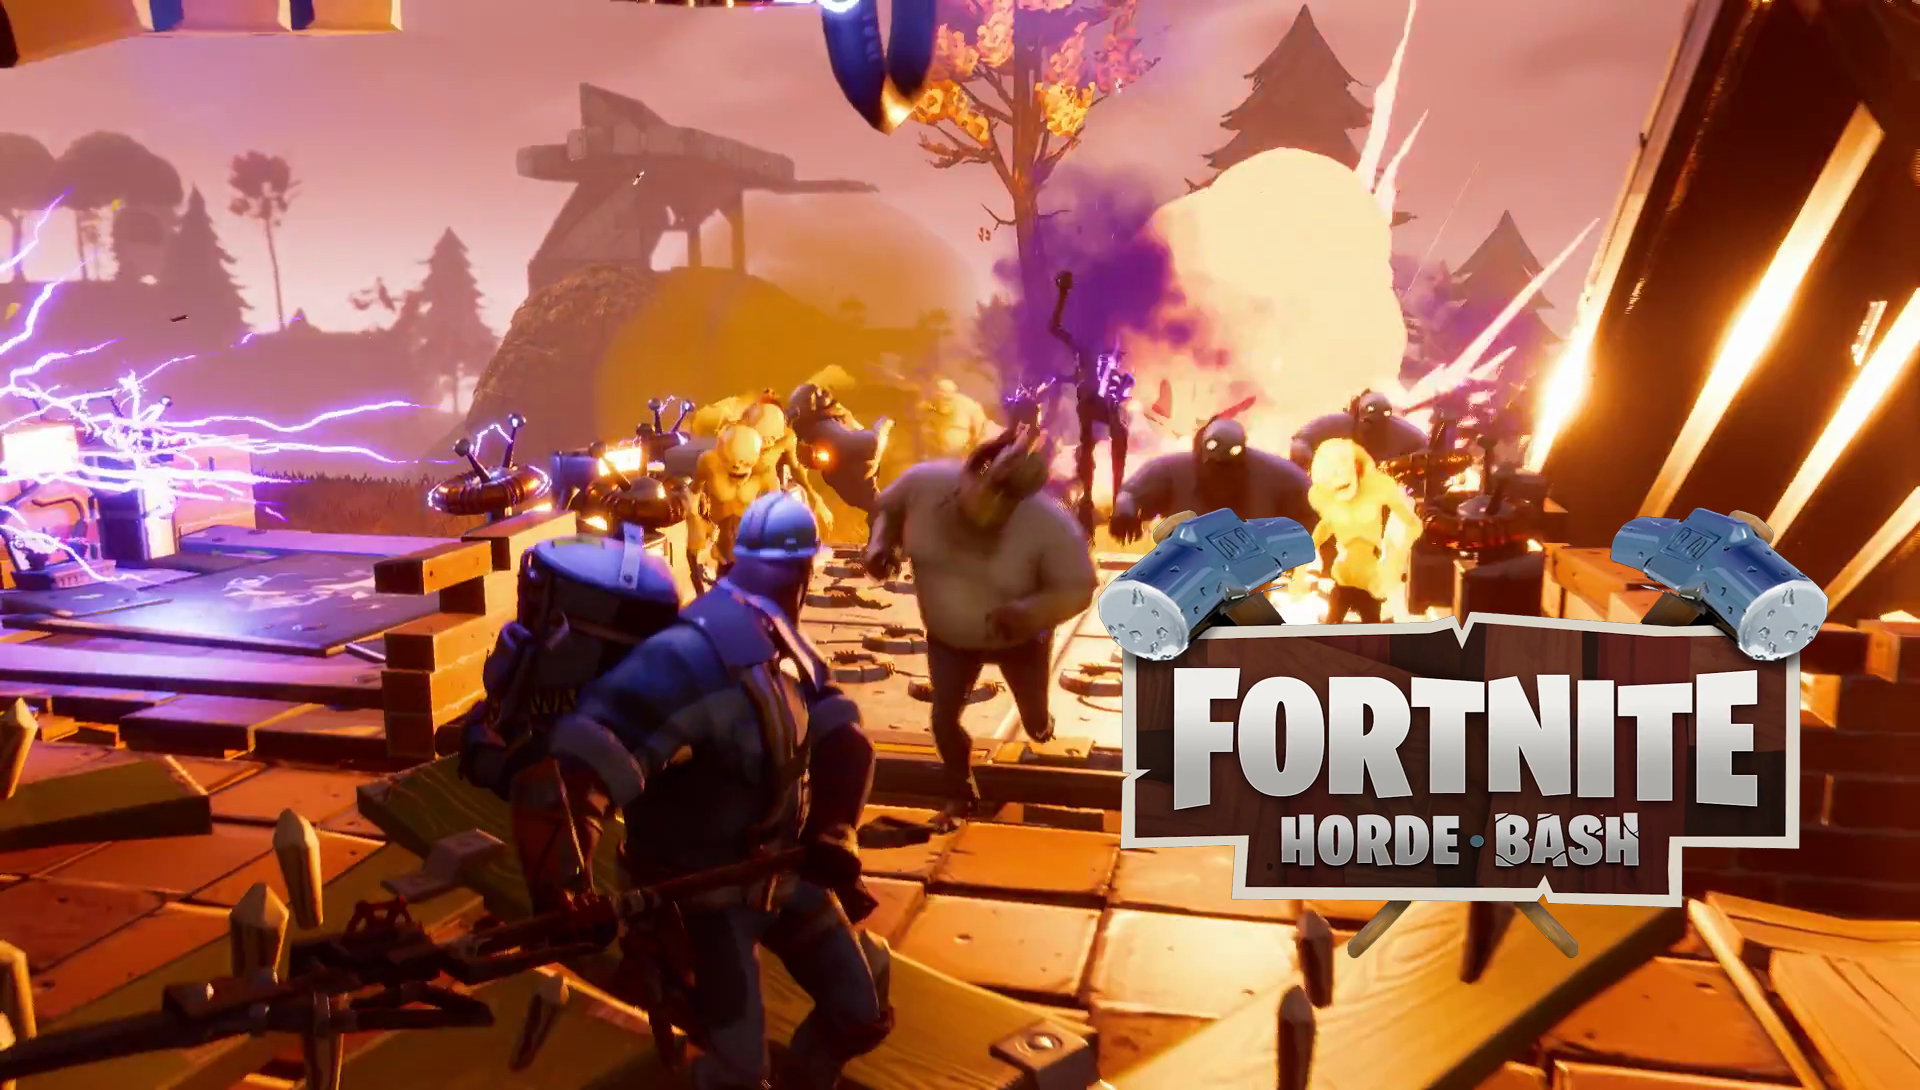 New Fortnite update brings Horde Bash, with new heroes, and